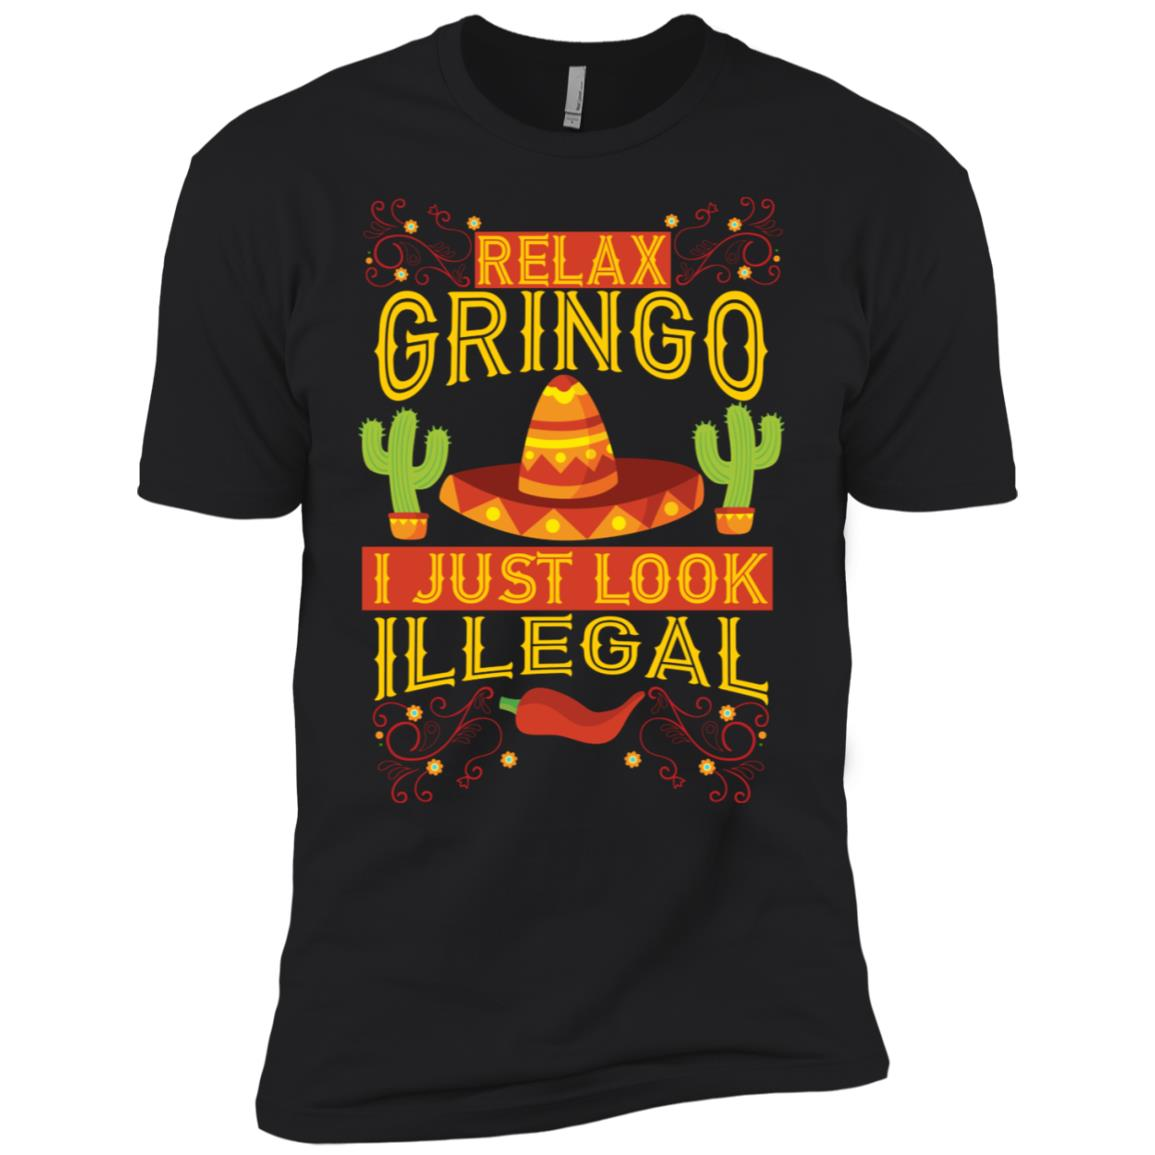 Relax Gringo I Just Look Illegal Gabacho Outsider Tee Gift Men Short Sleeve T-Shirt